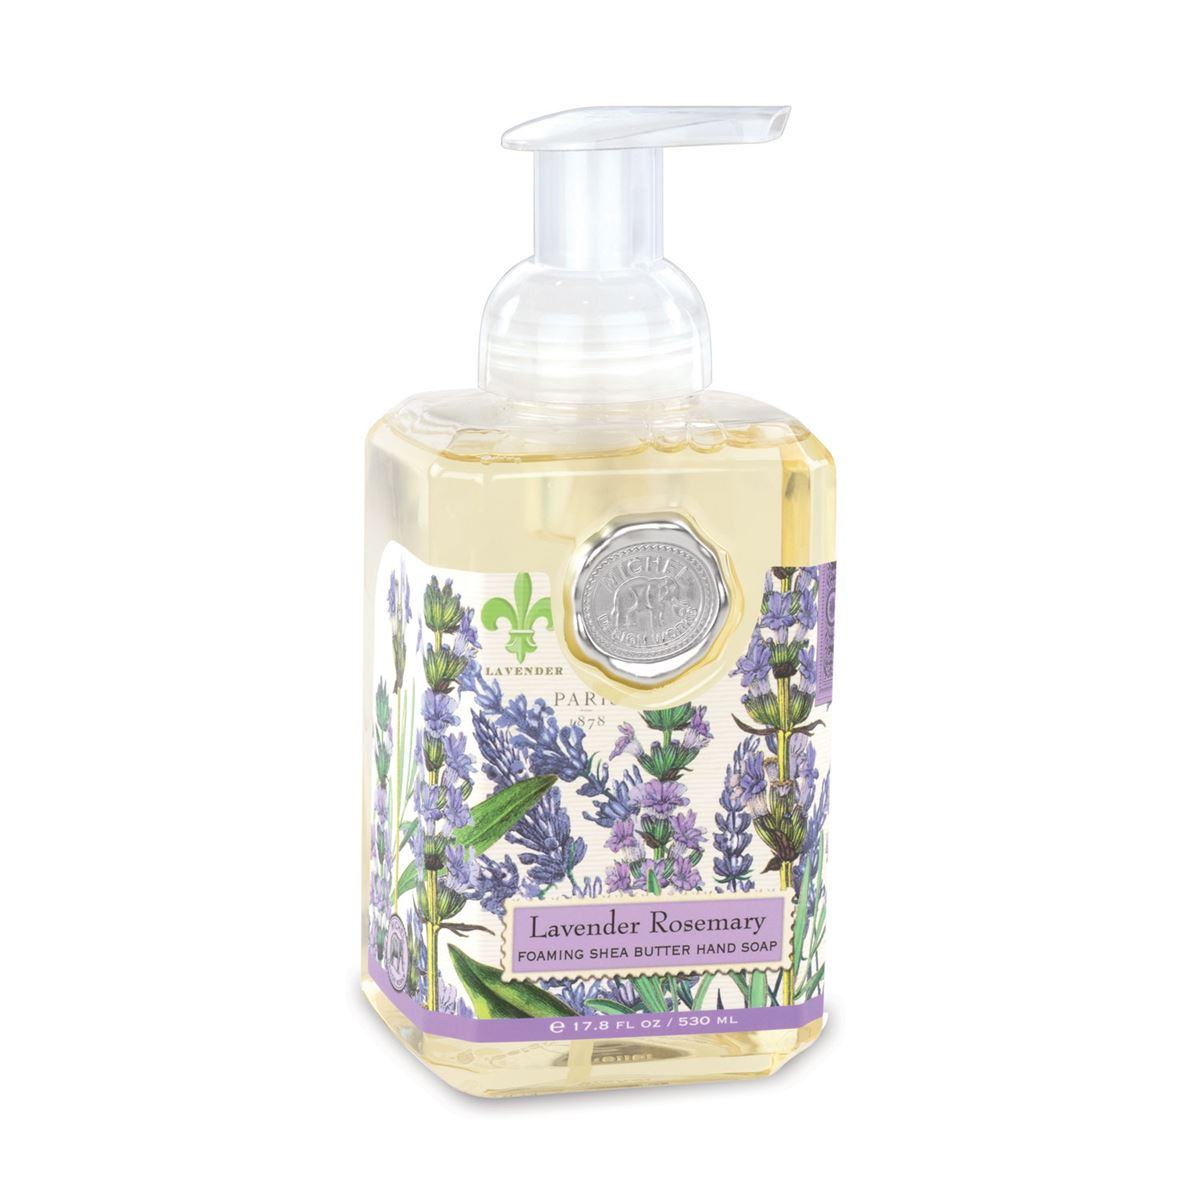 Lavender Rosemary Foaming Soap, Front View